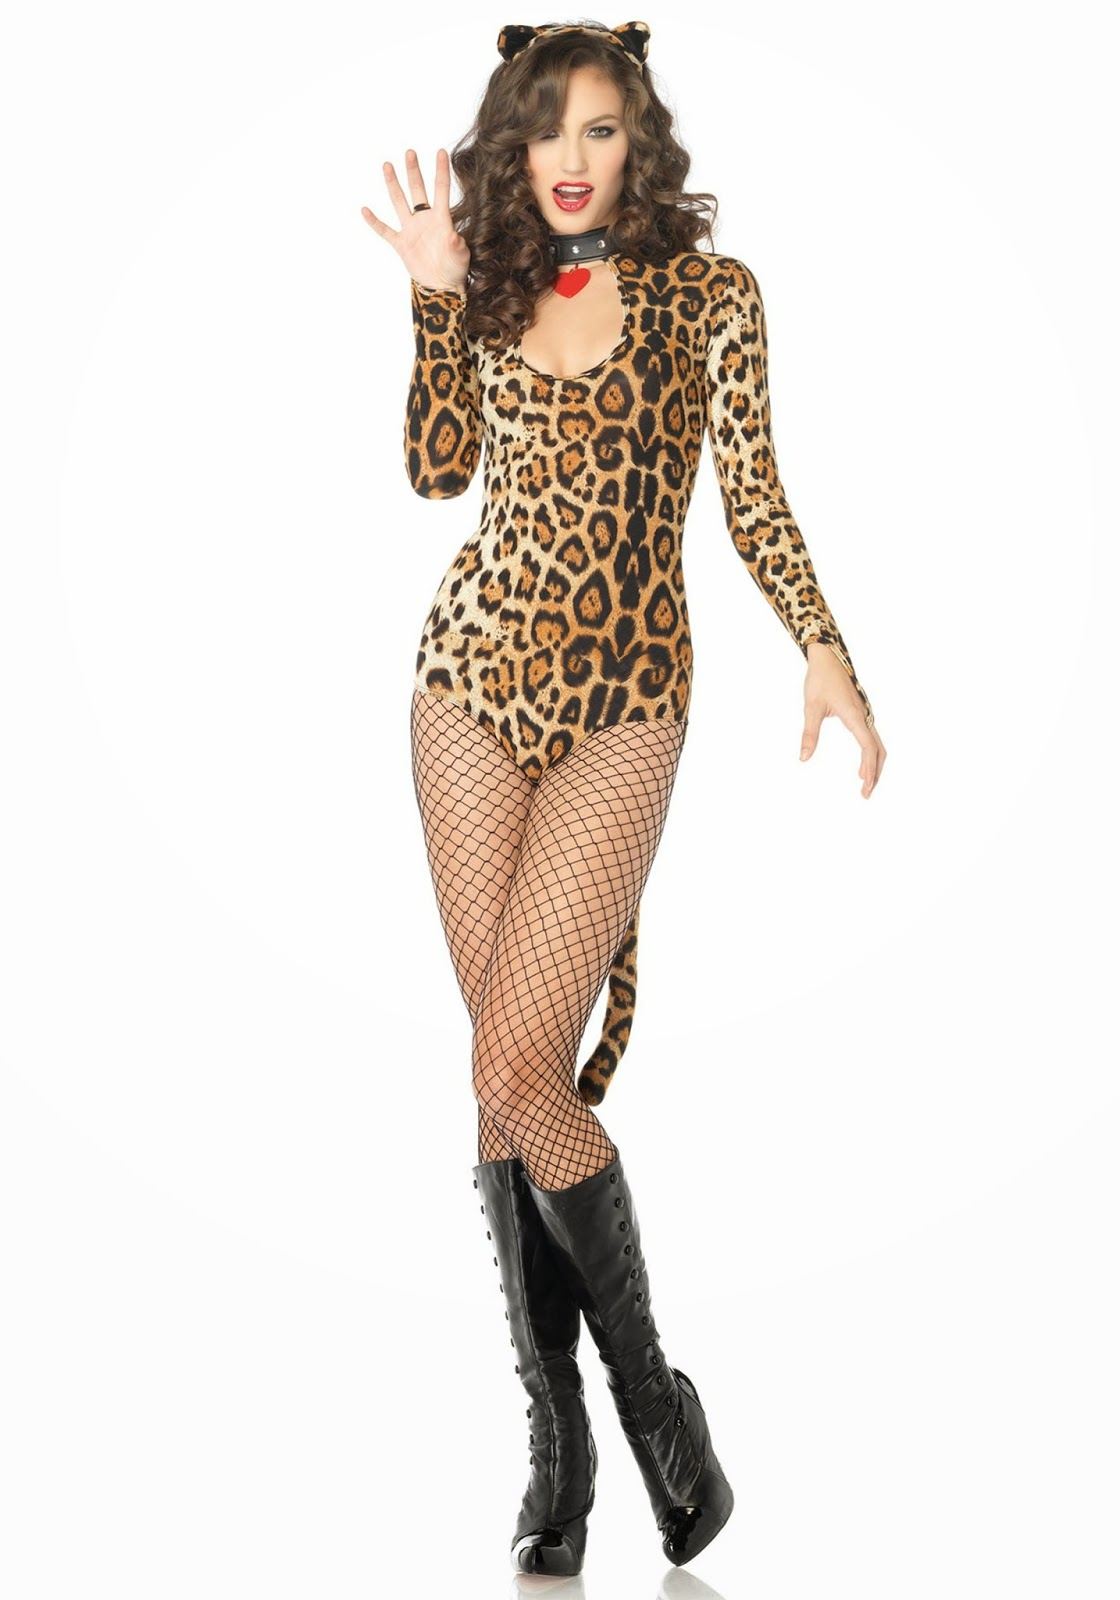 imgchili cat 1.)Get in touch with your wild side in this great animal print one piece. Add a pair of jungle cat ears and a tail and your costume is complete.